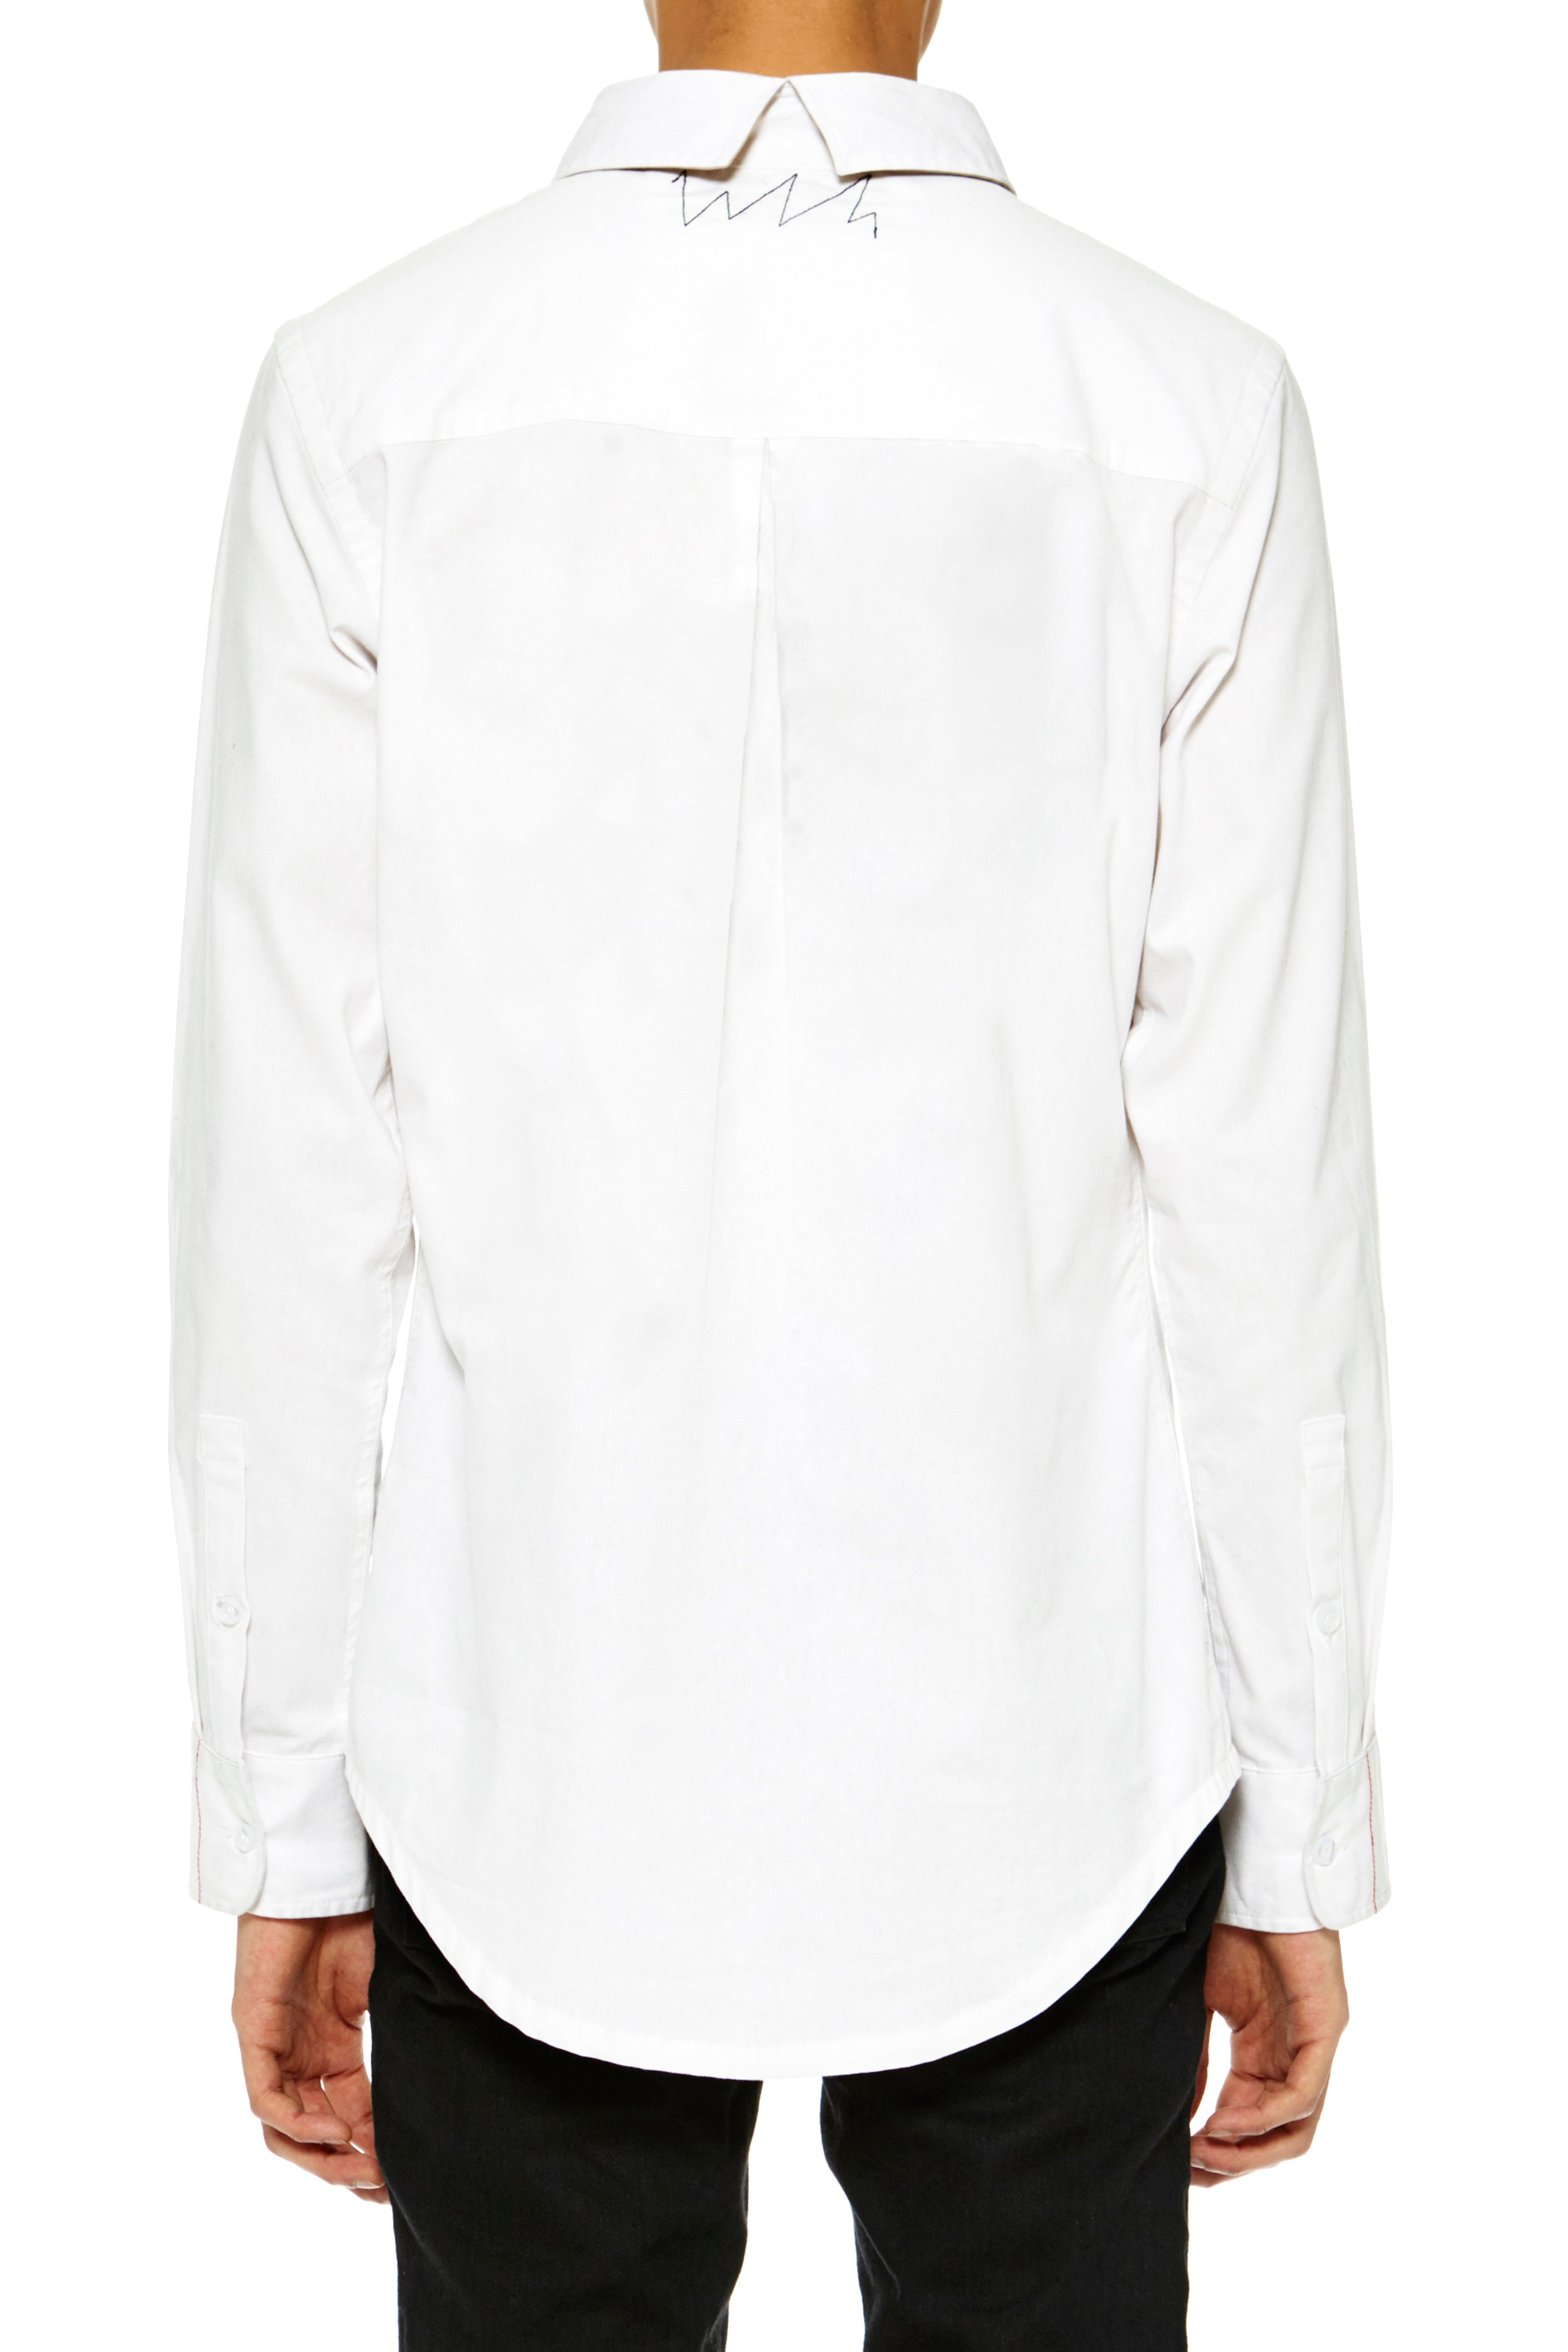 Spencer Dress Shirt